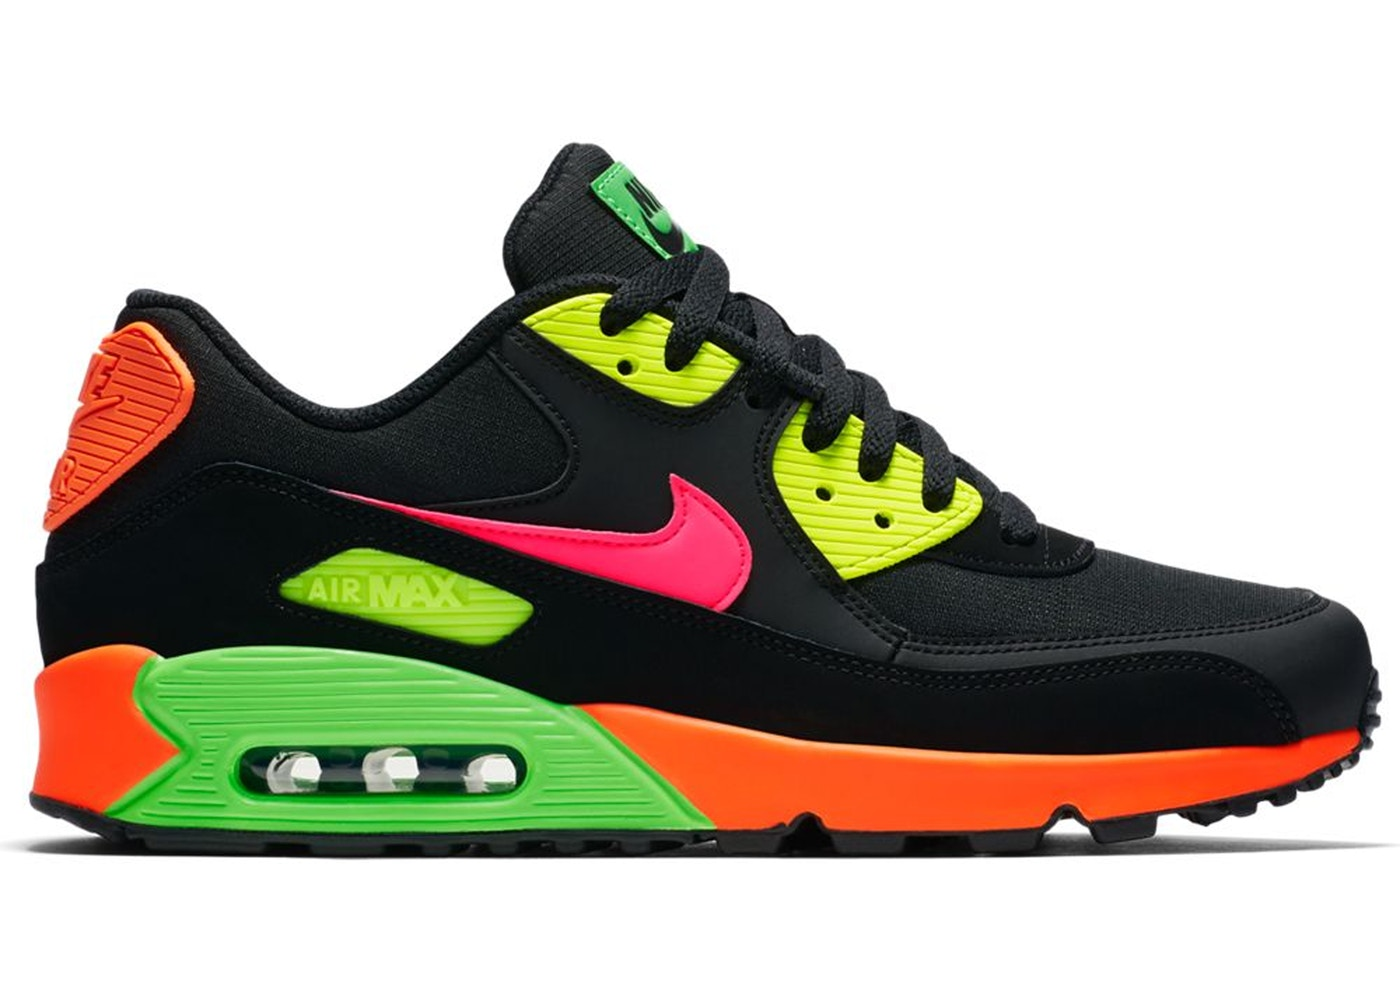 5b451317ae4 Nike Air Max 90 Shoes - Highest Bid